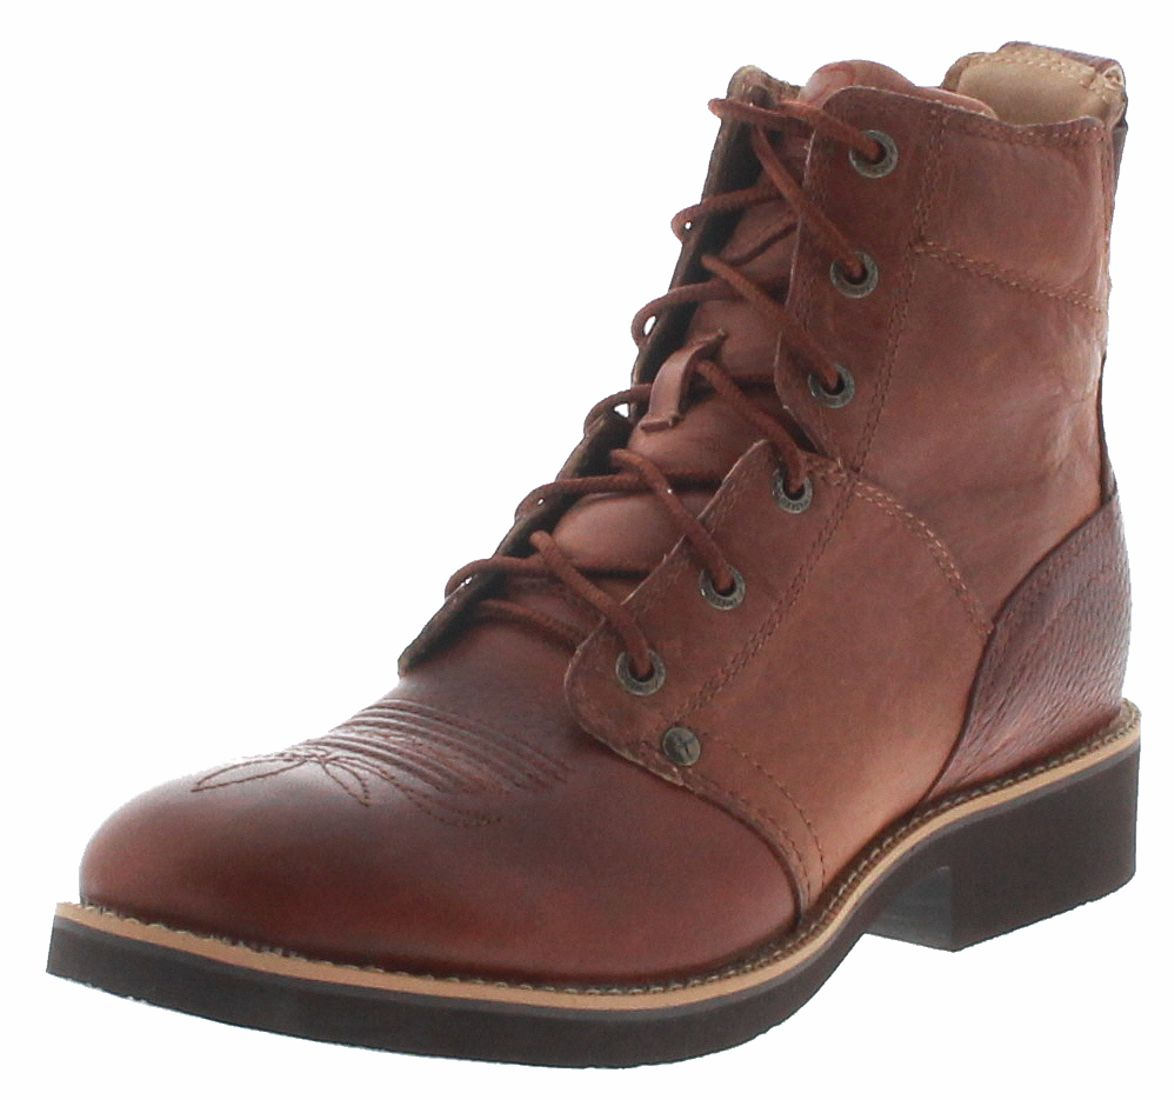 Twisted X 1739 CALF ROPER LACER Cognac ladies riding ankle boot - brown